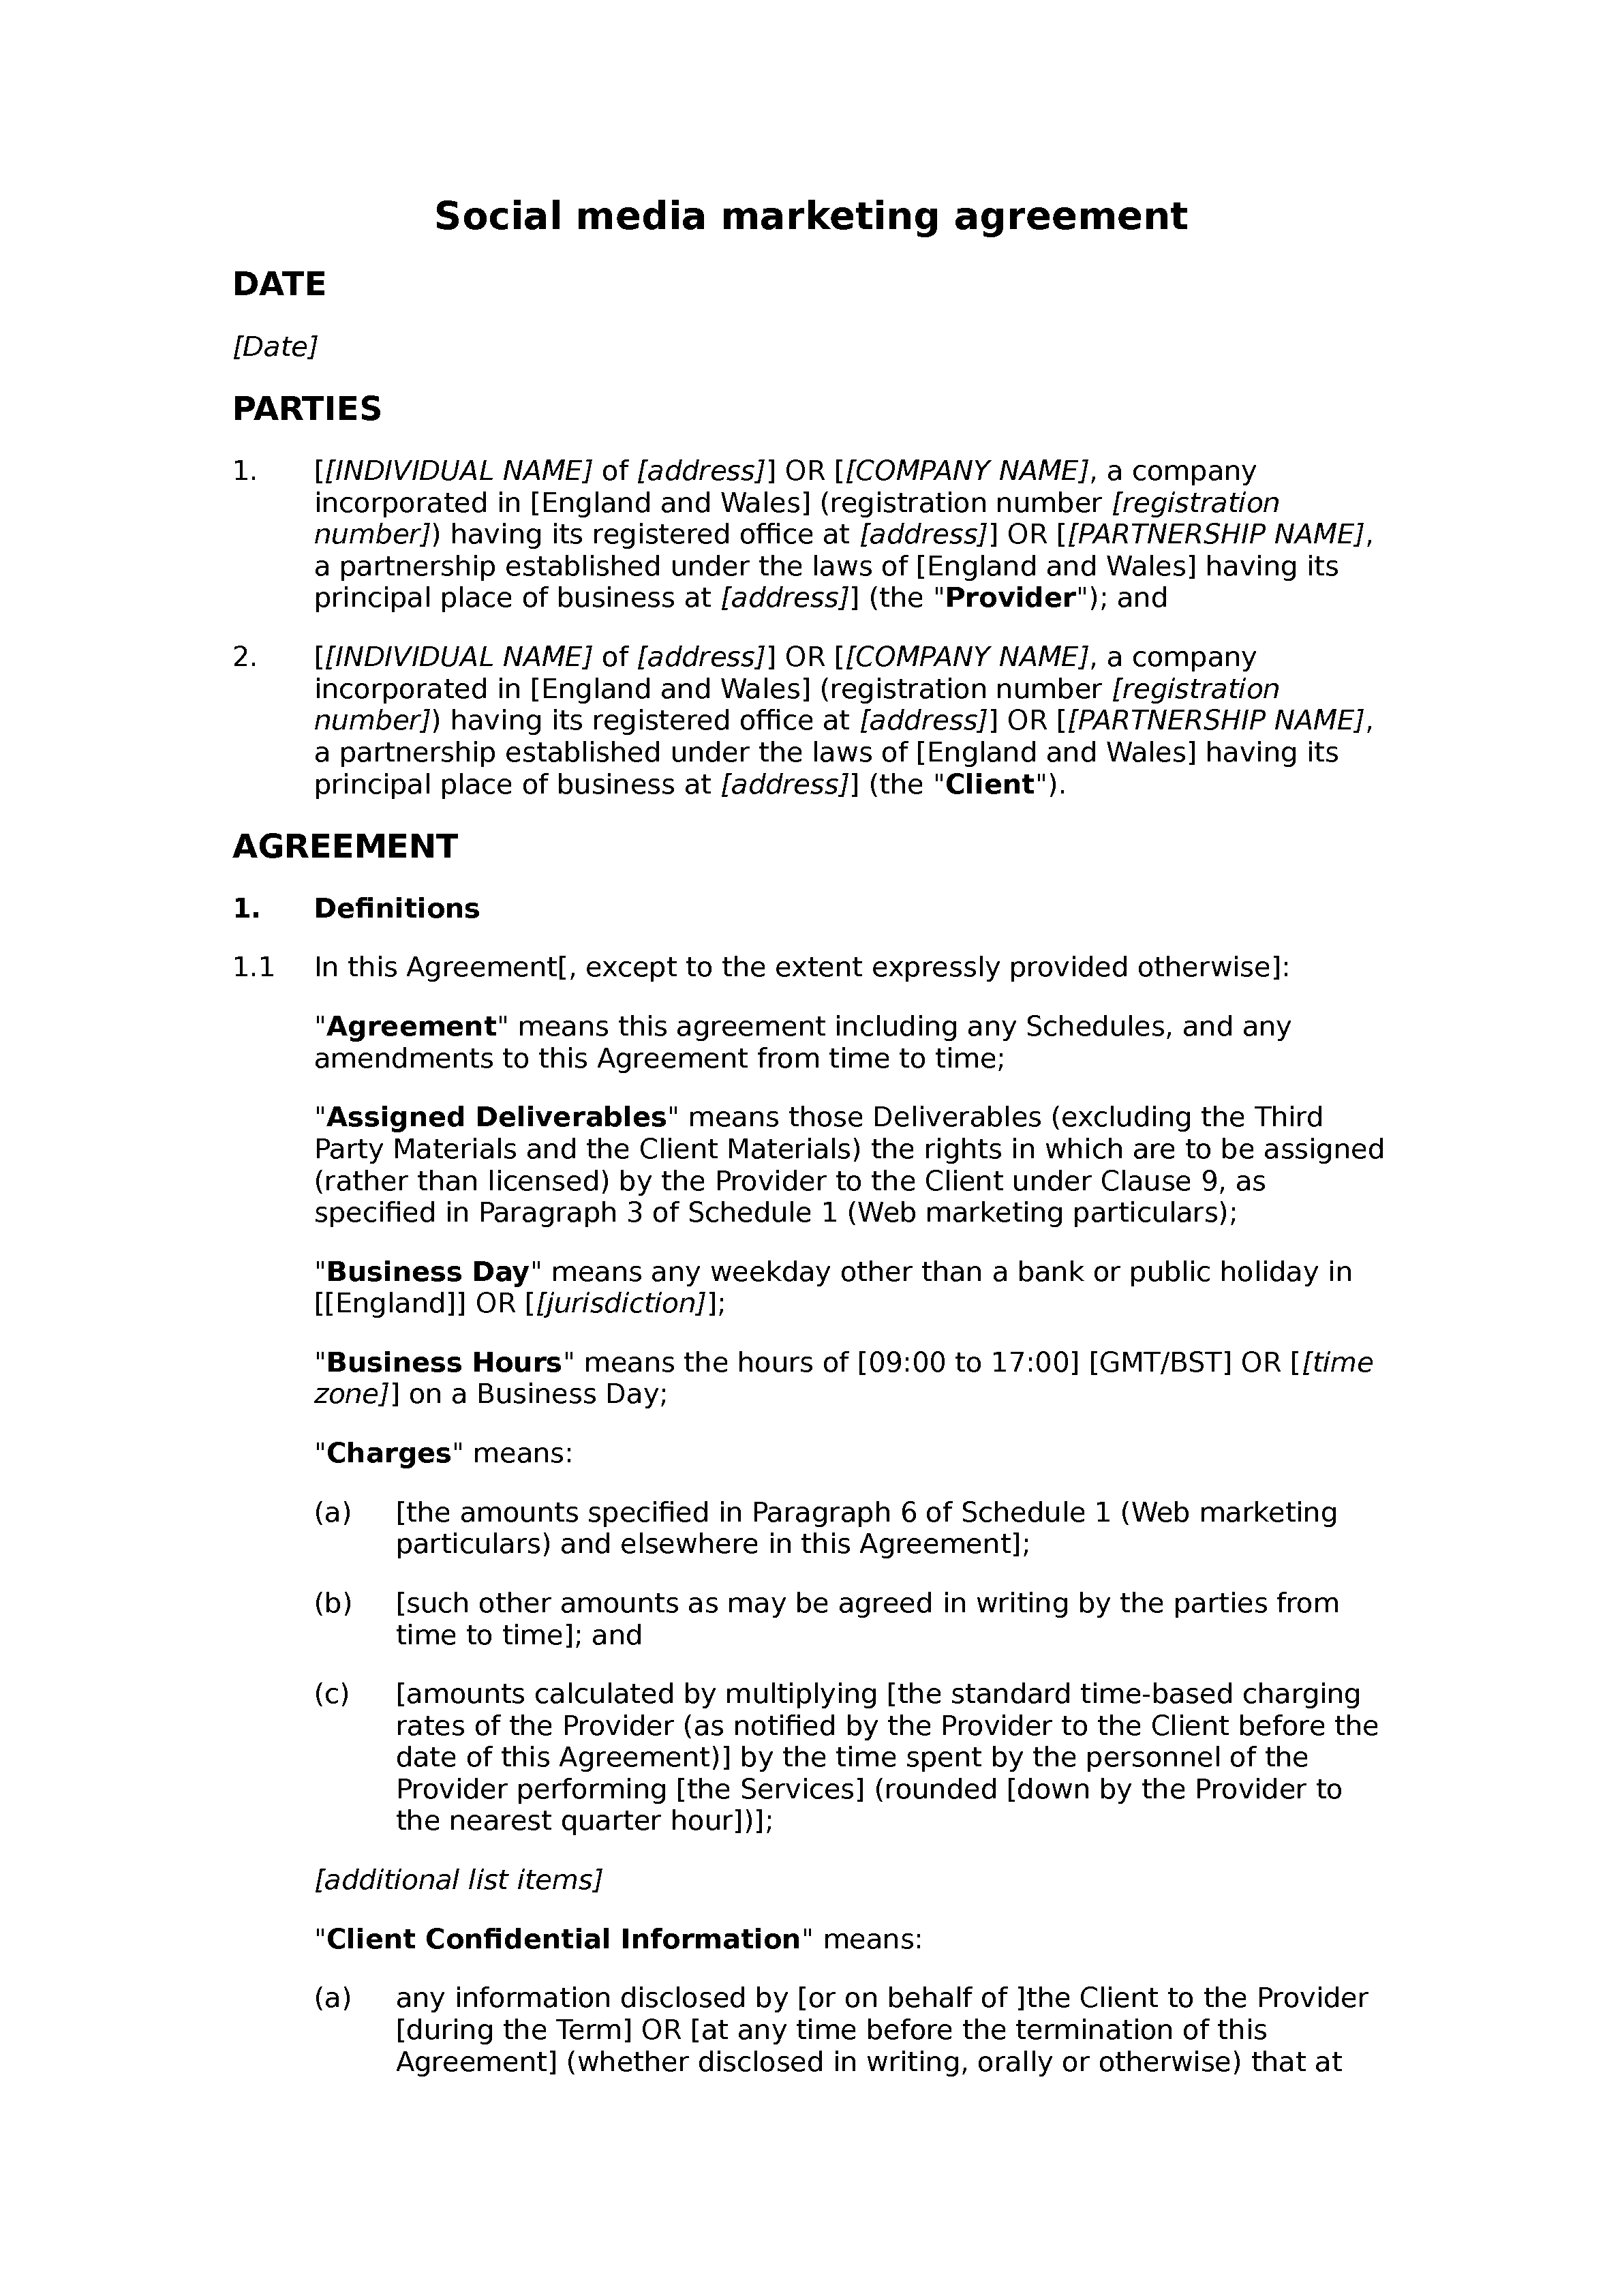 Social media marketing agreement document preview